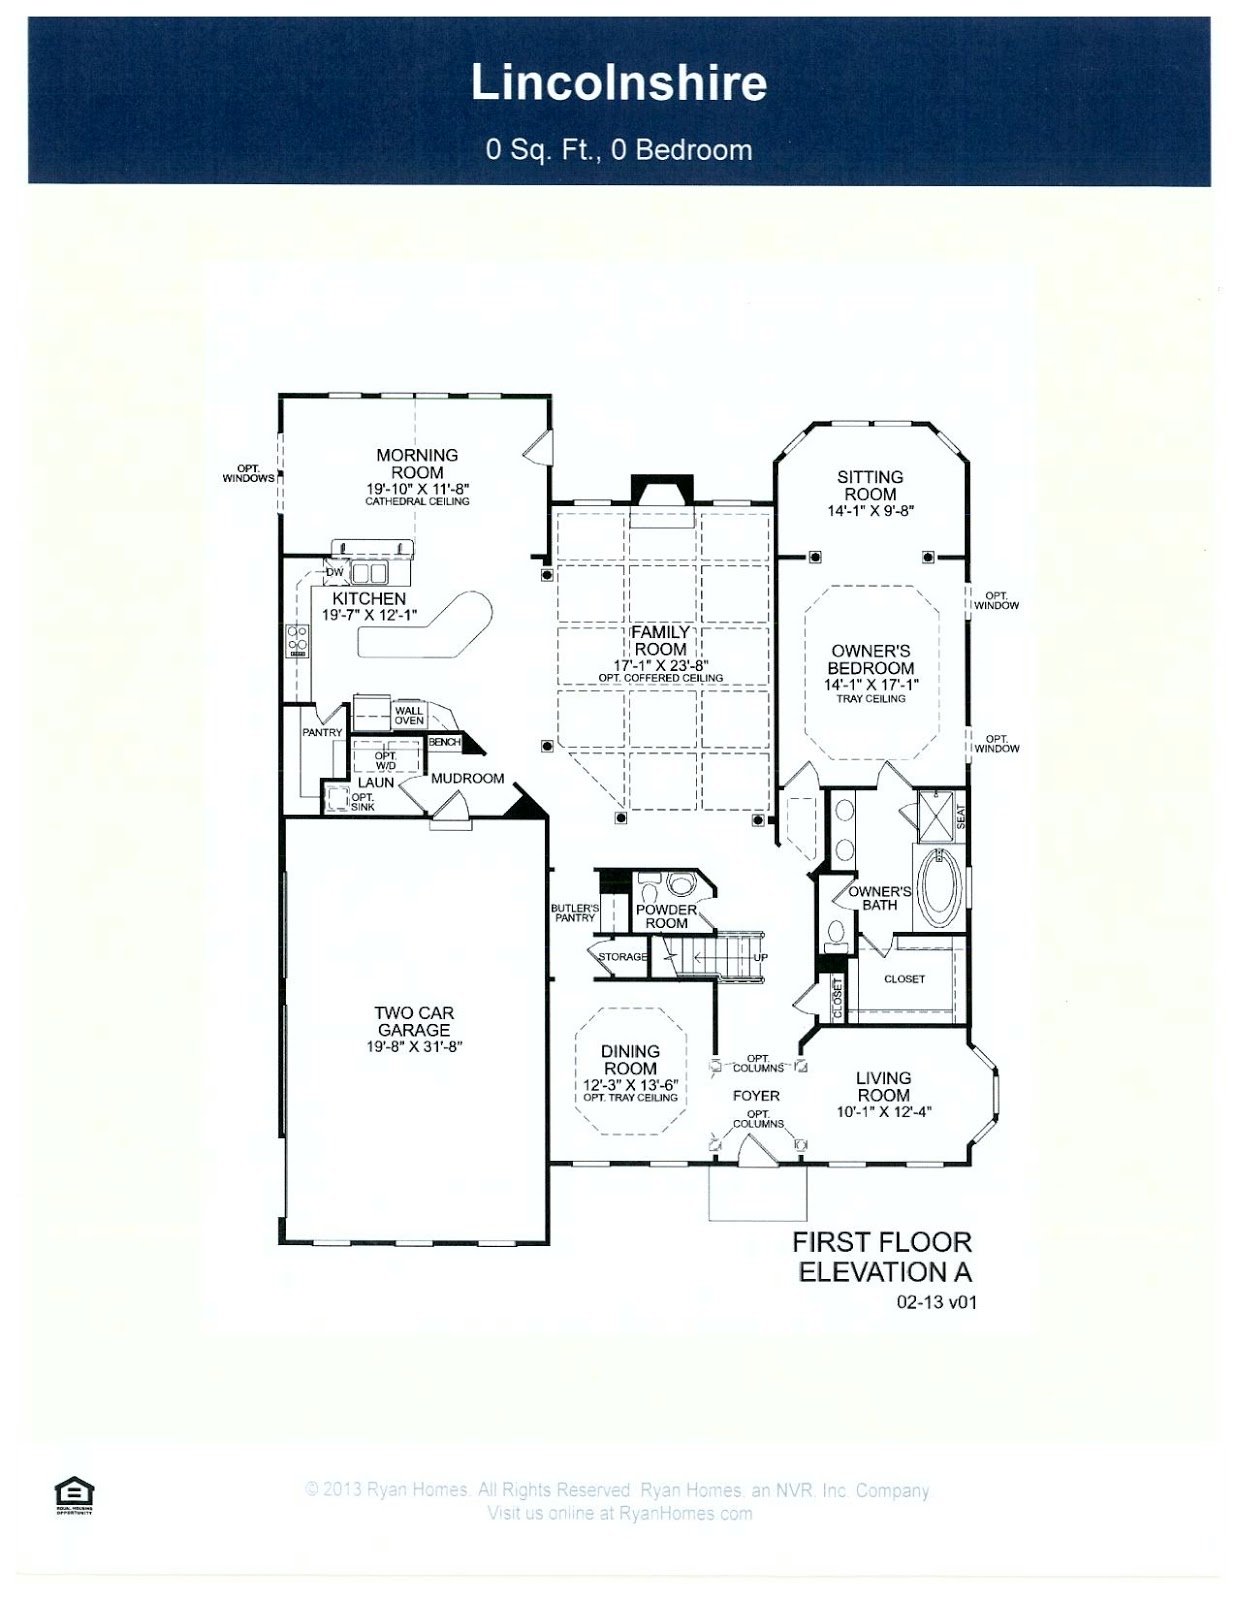 Our new home ryan homes lincolnshire plan floor plan w for Ran homes plans